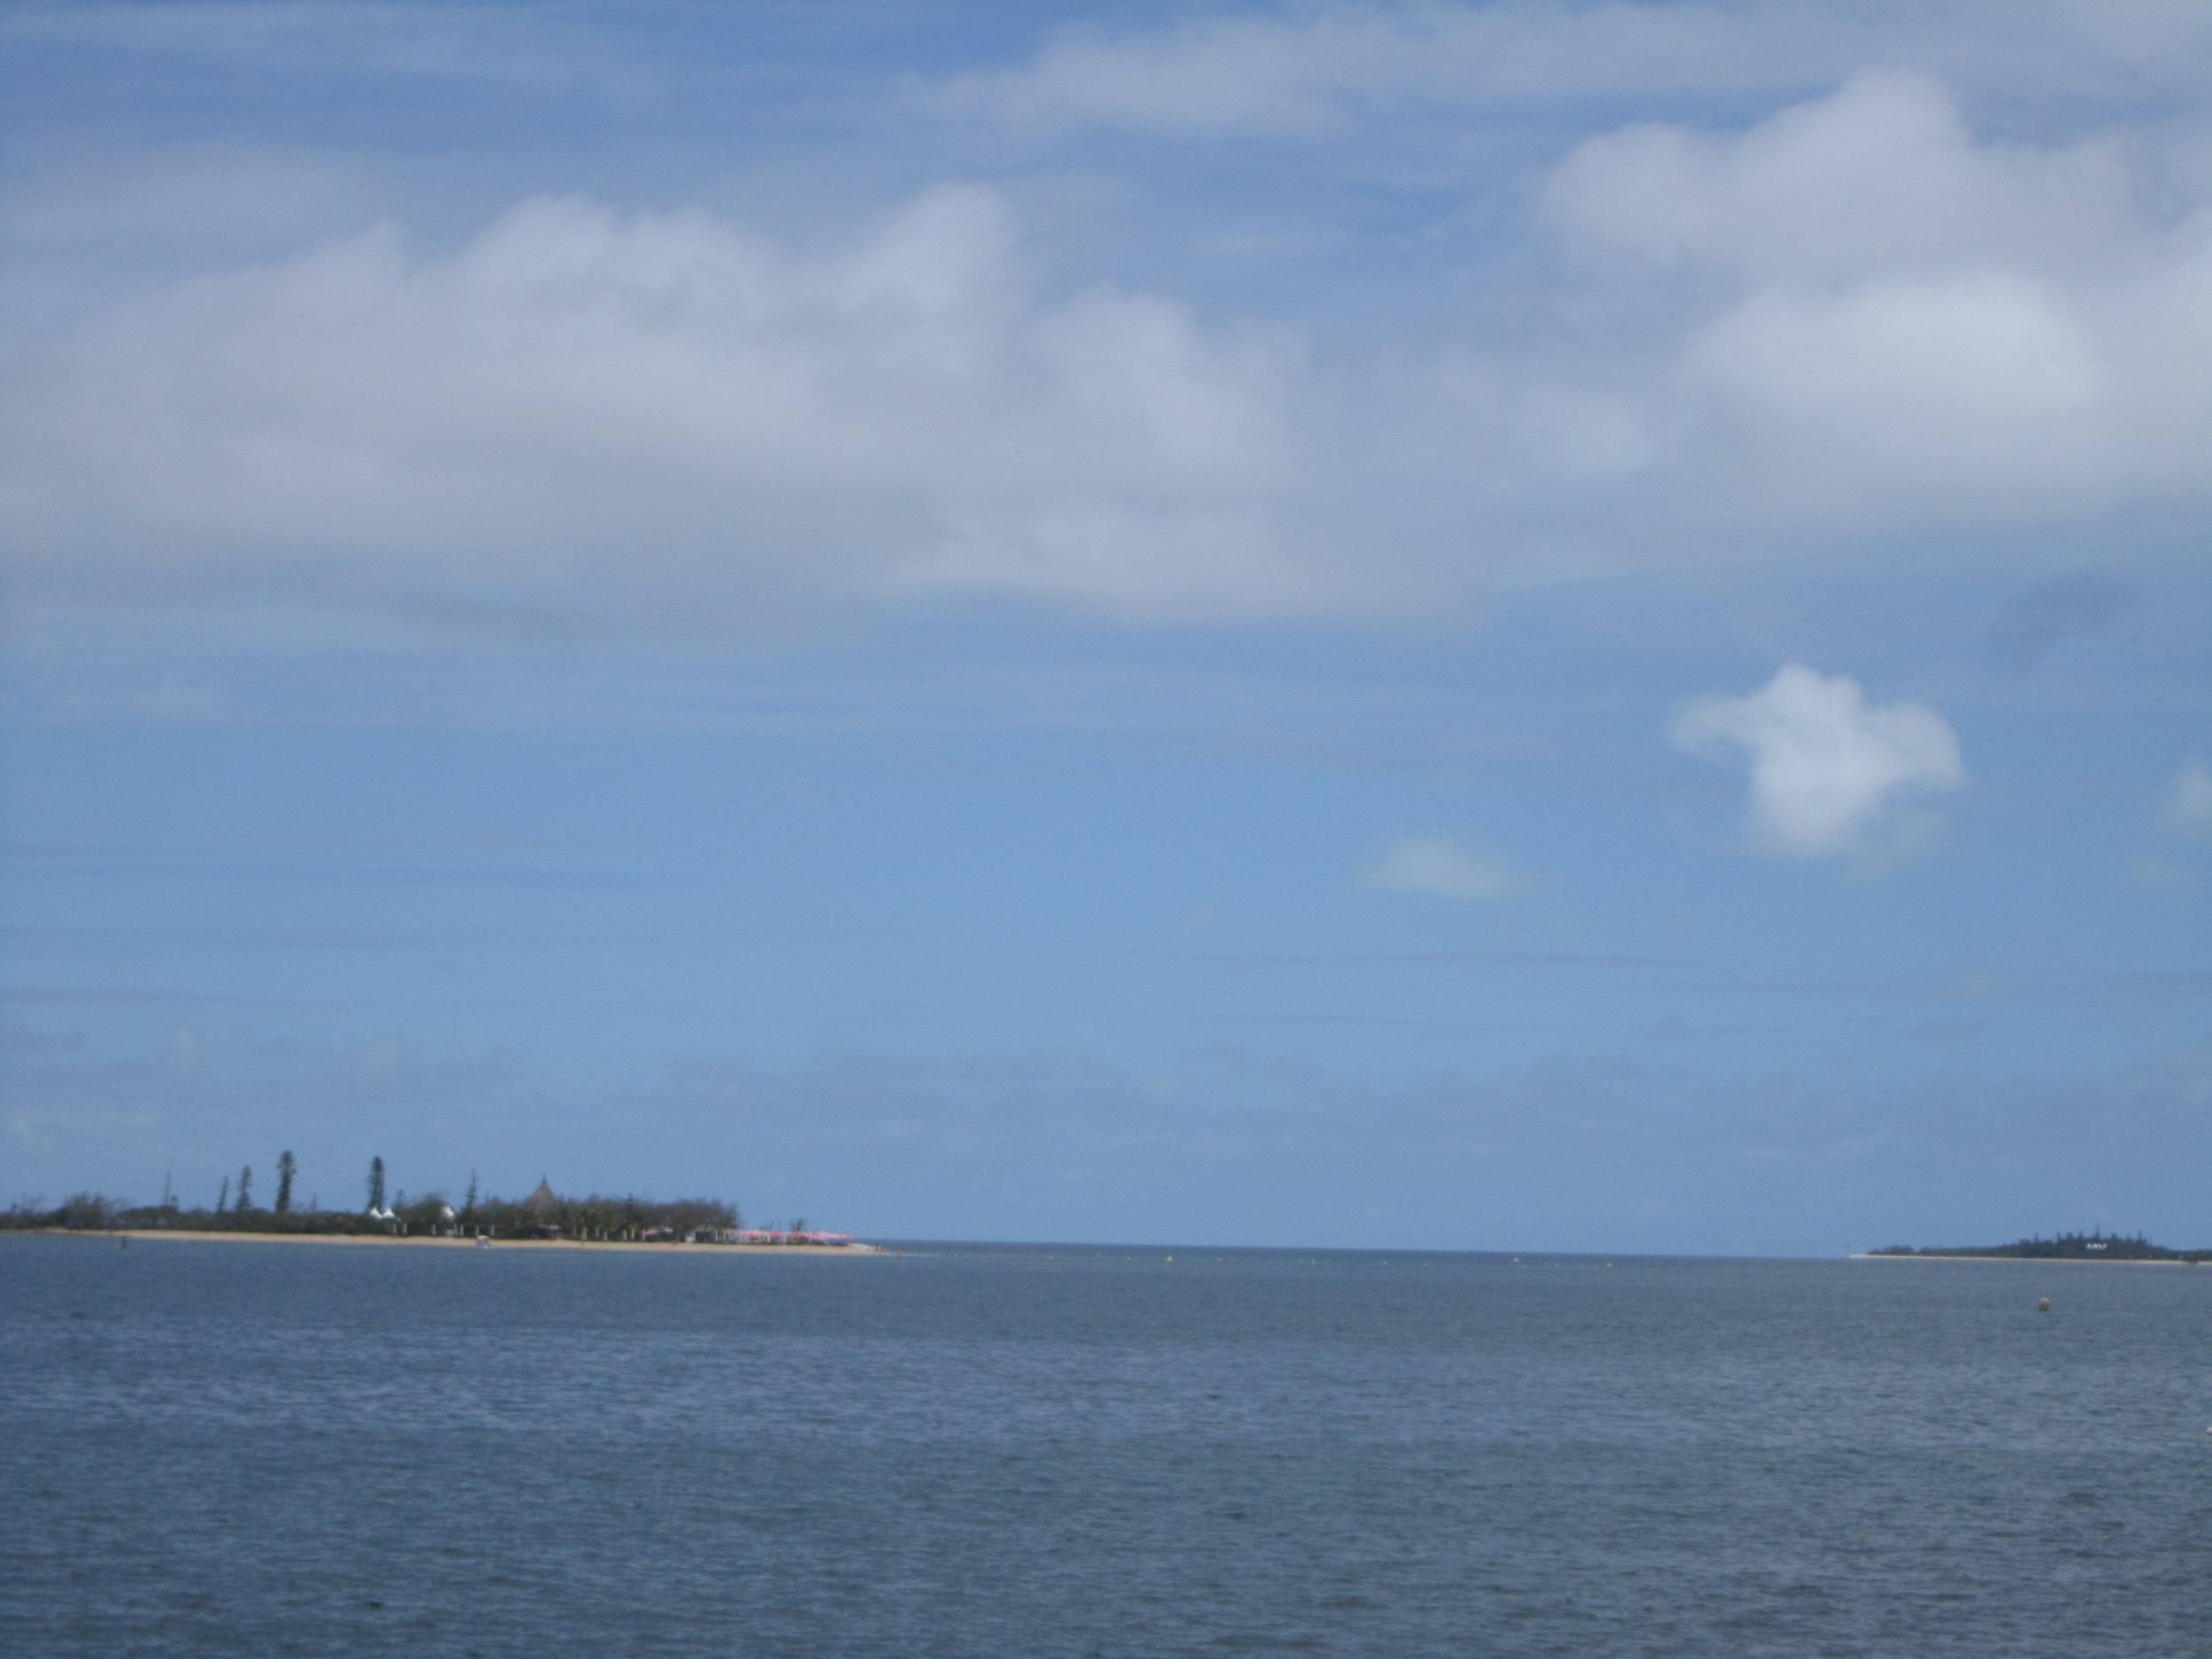 Duck Island, a quick boat ride from the beaches of Noumea, is ideal for snorkeling and a picnic lunch.